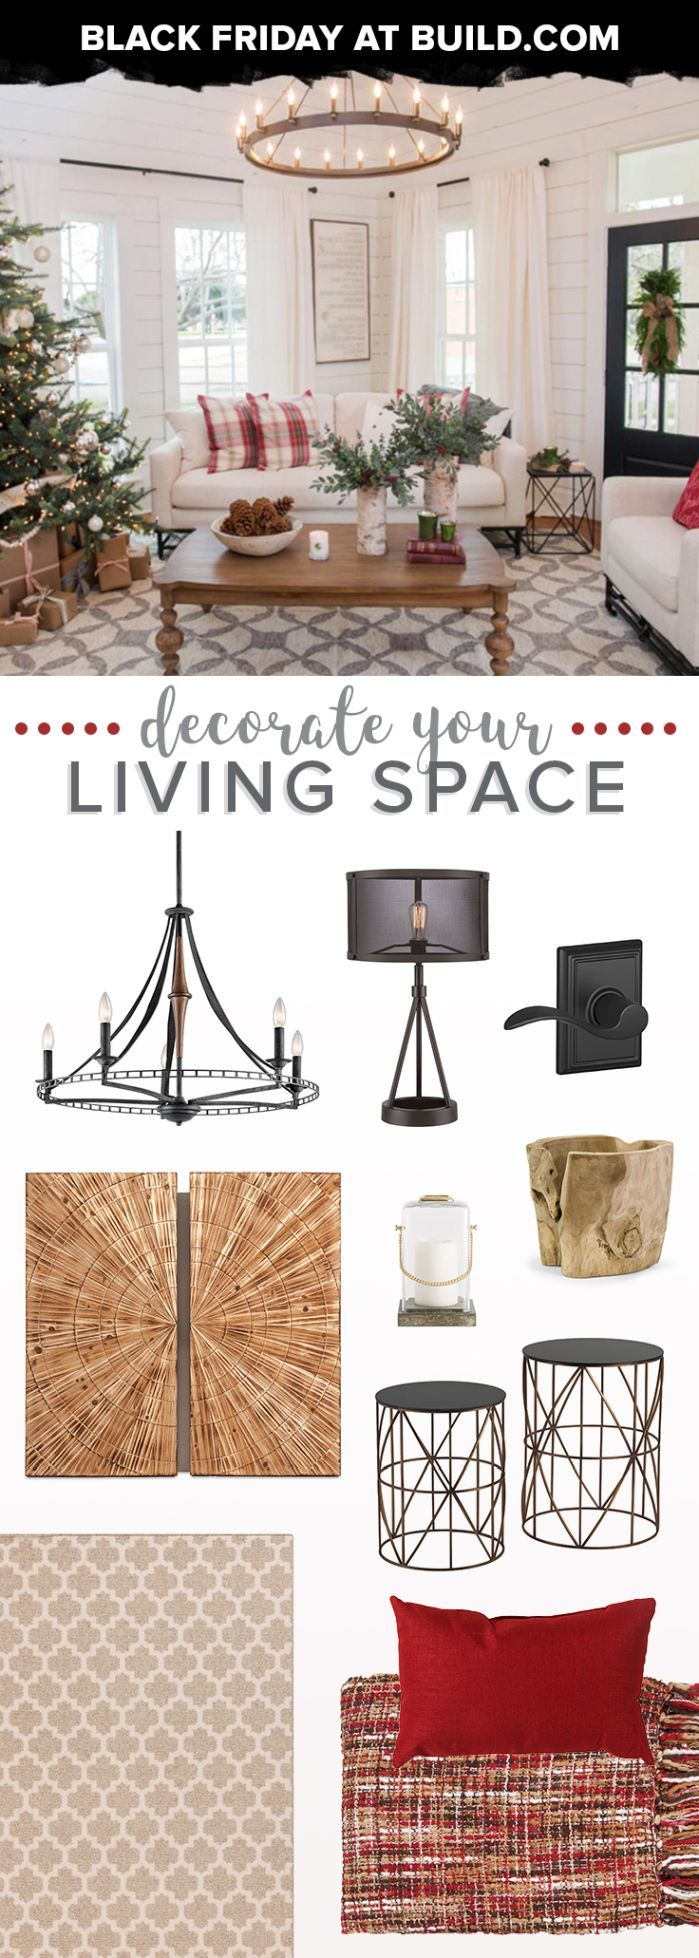 Decorate your living space before the holidays. Save up to 80% at Build.com now through 12.4.17